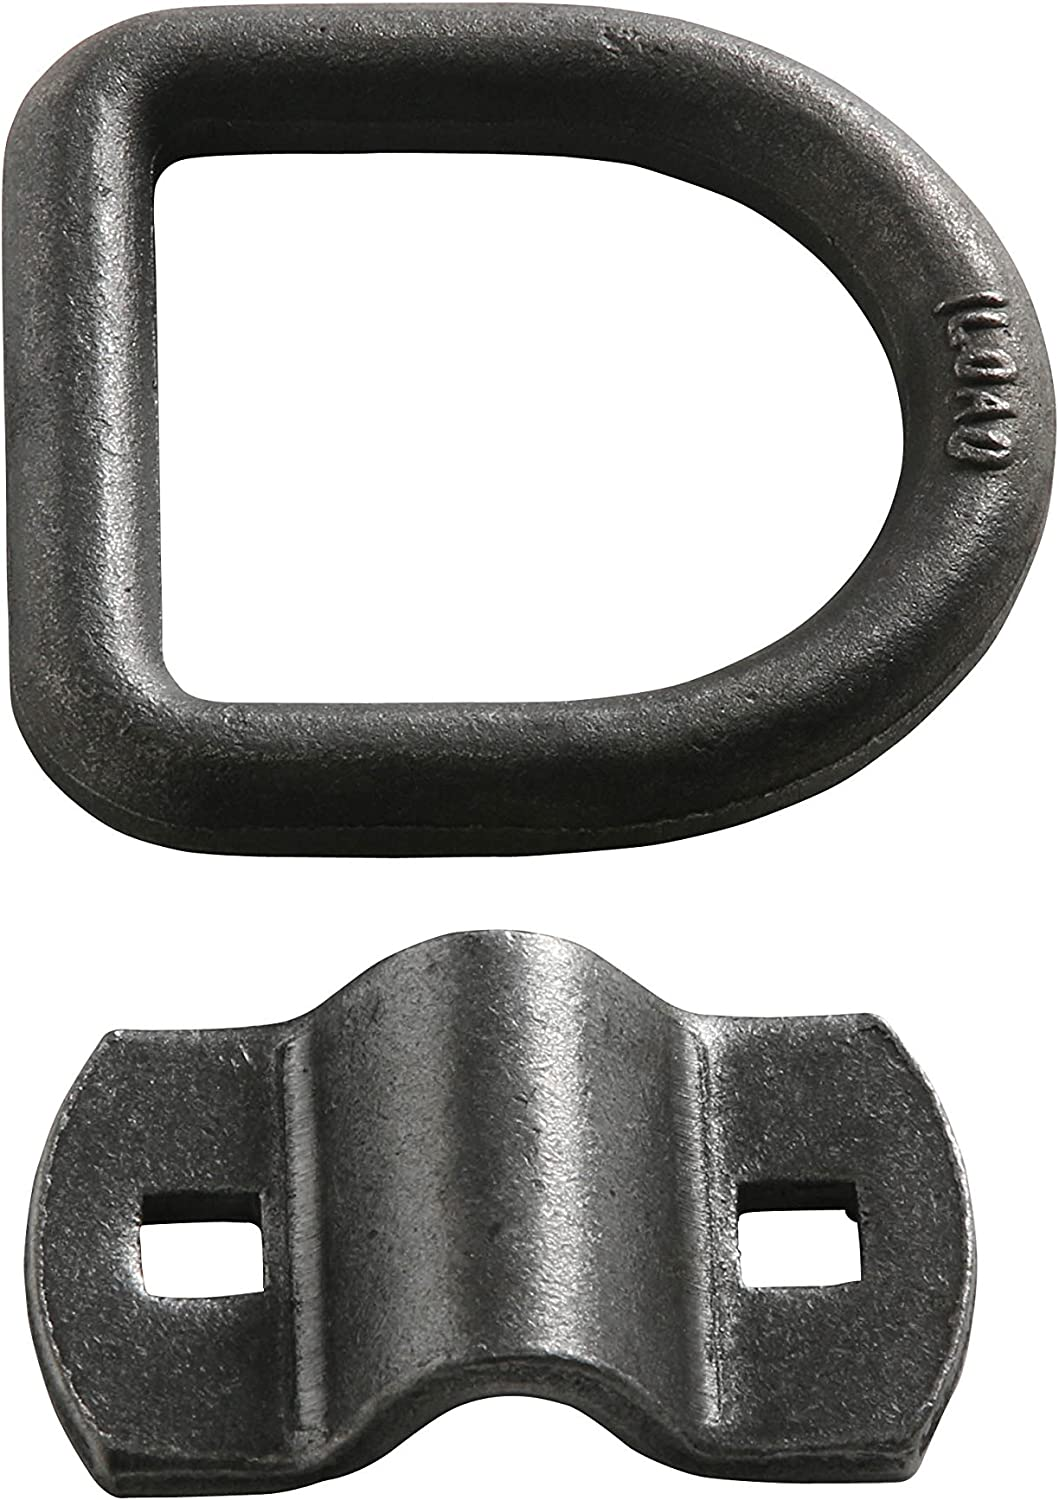 with Bolt-on Mounting Bracket Clip DC Cargo Mall 10-Pack 1//2 Diameter Grey D Ring Cargo Tie-Down Anchor for Truck Beds and Trailers